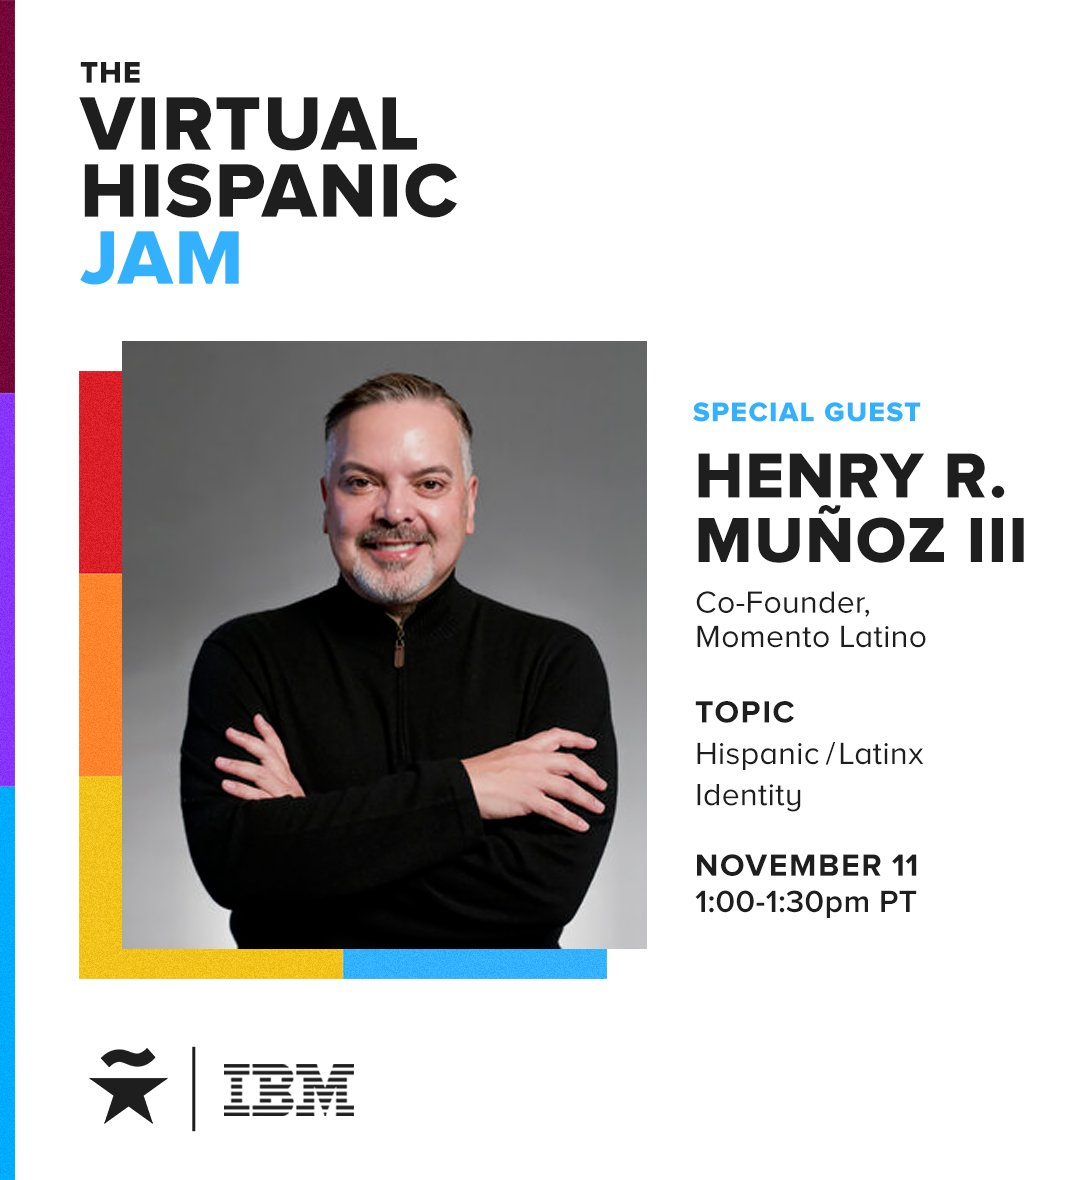 #MomentoLatino founder @HenryRMunozIII is joining @IBM and @TheHispanicStar's Virtual Hispanic Jam at 1pm PT! Join us for a discussion of #Latinx identity.